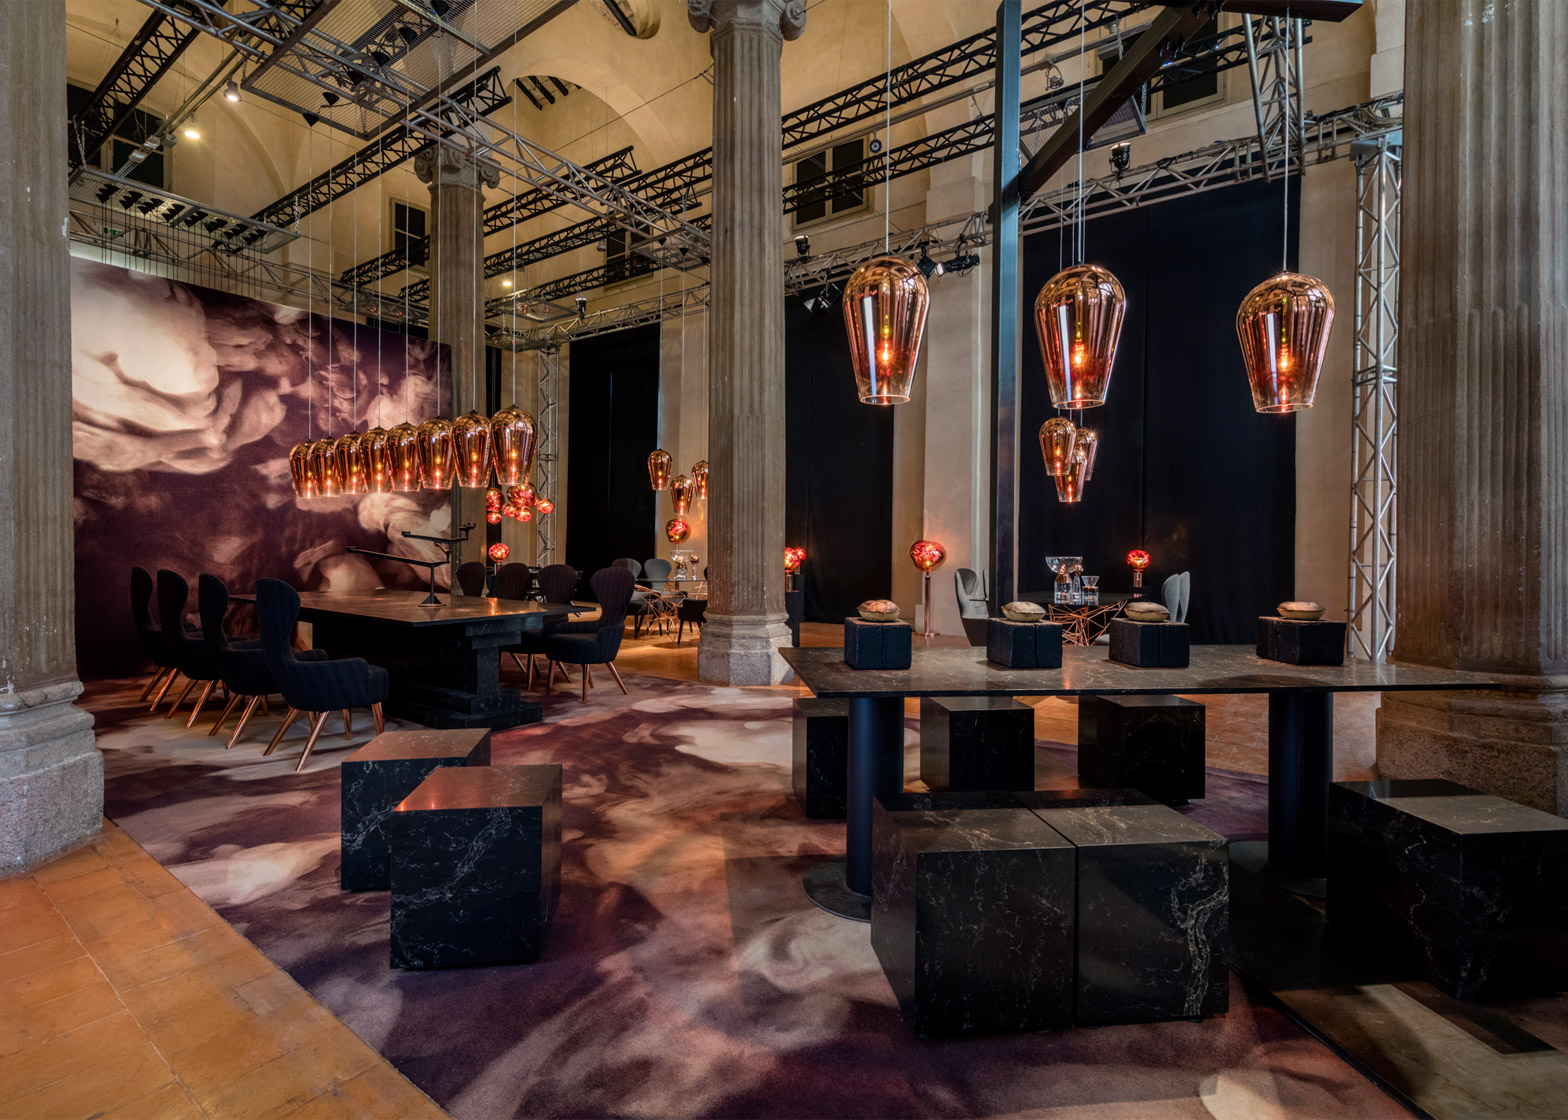 Find the Restaurant by Tom Dixon and Caesarstone